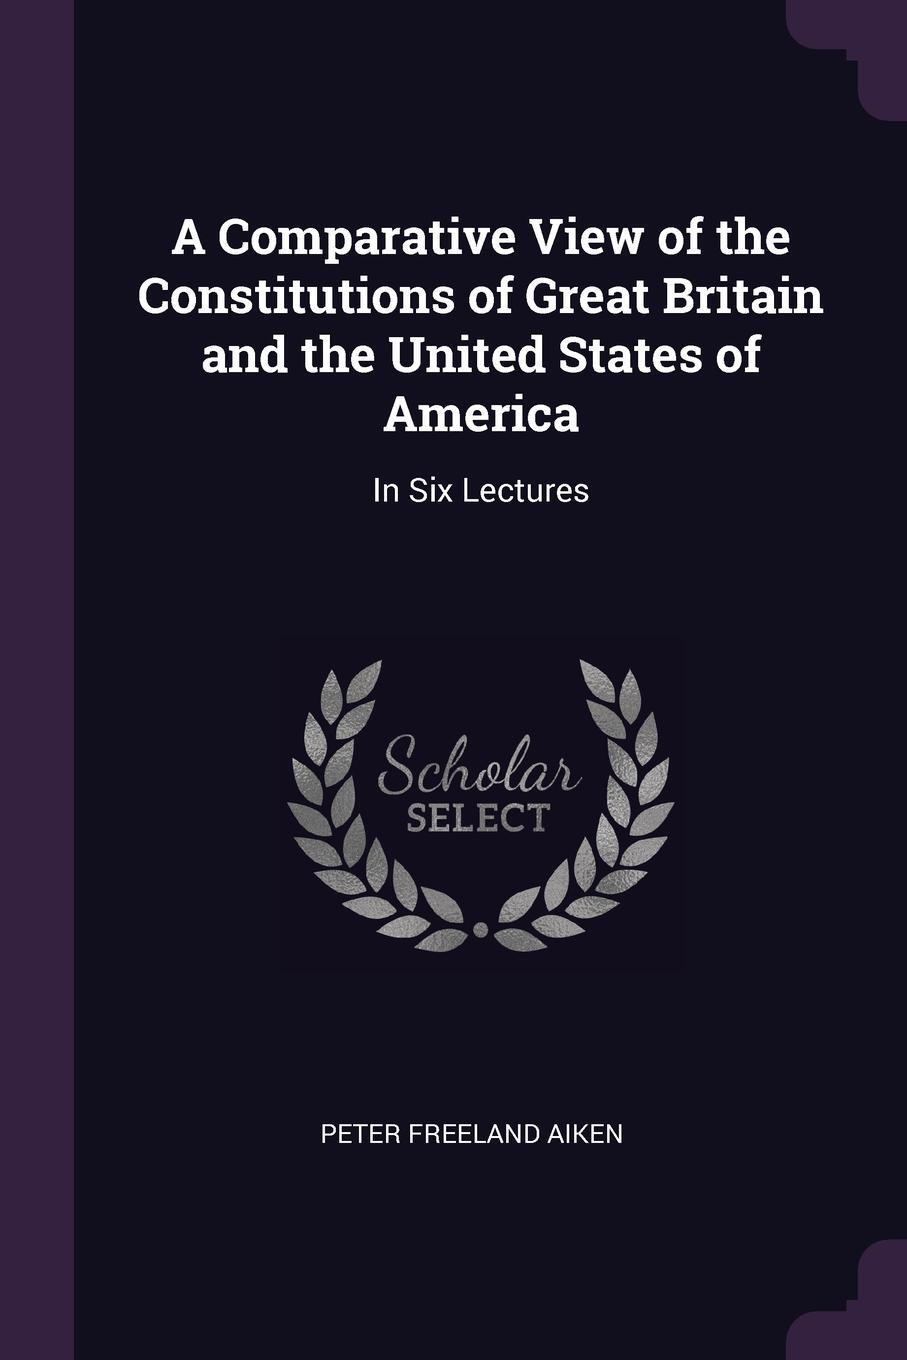 Peter Freeland Aiken. A Comparative View of the Constitutions of Great Britain and the United States of America. In Six Lectures